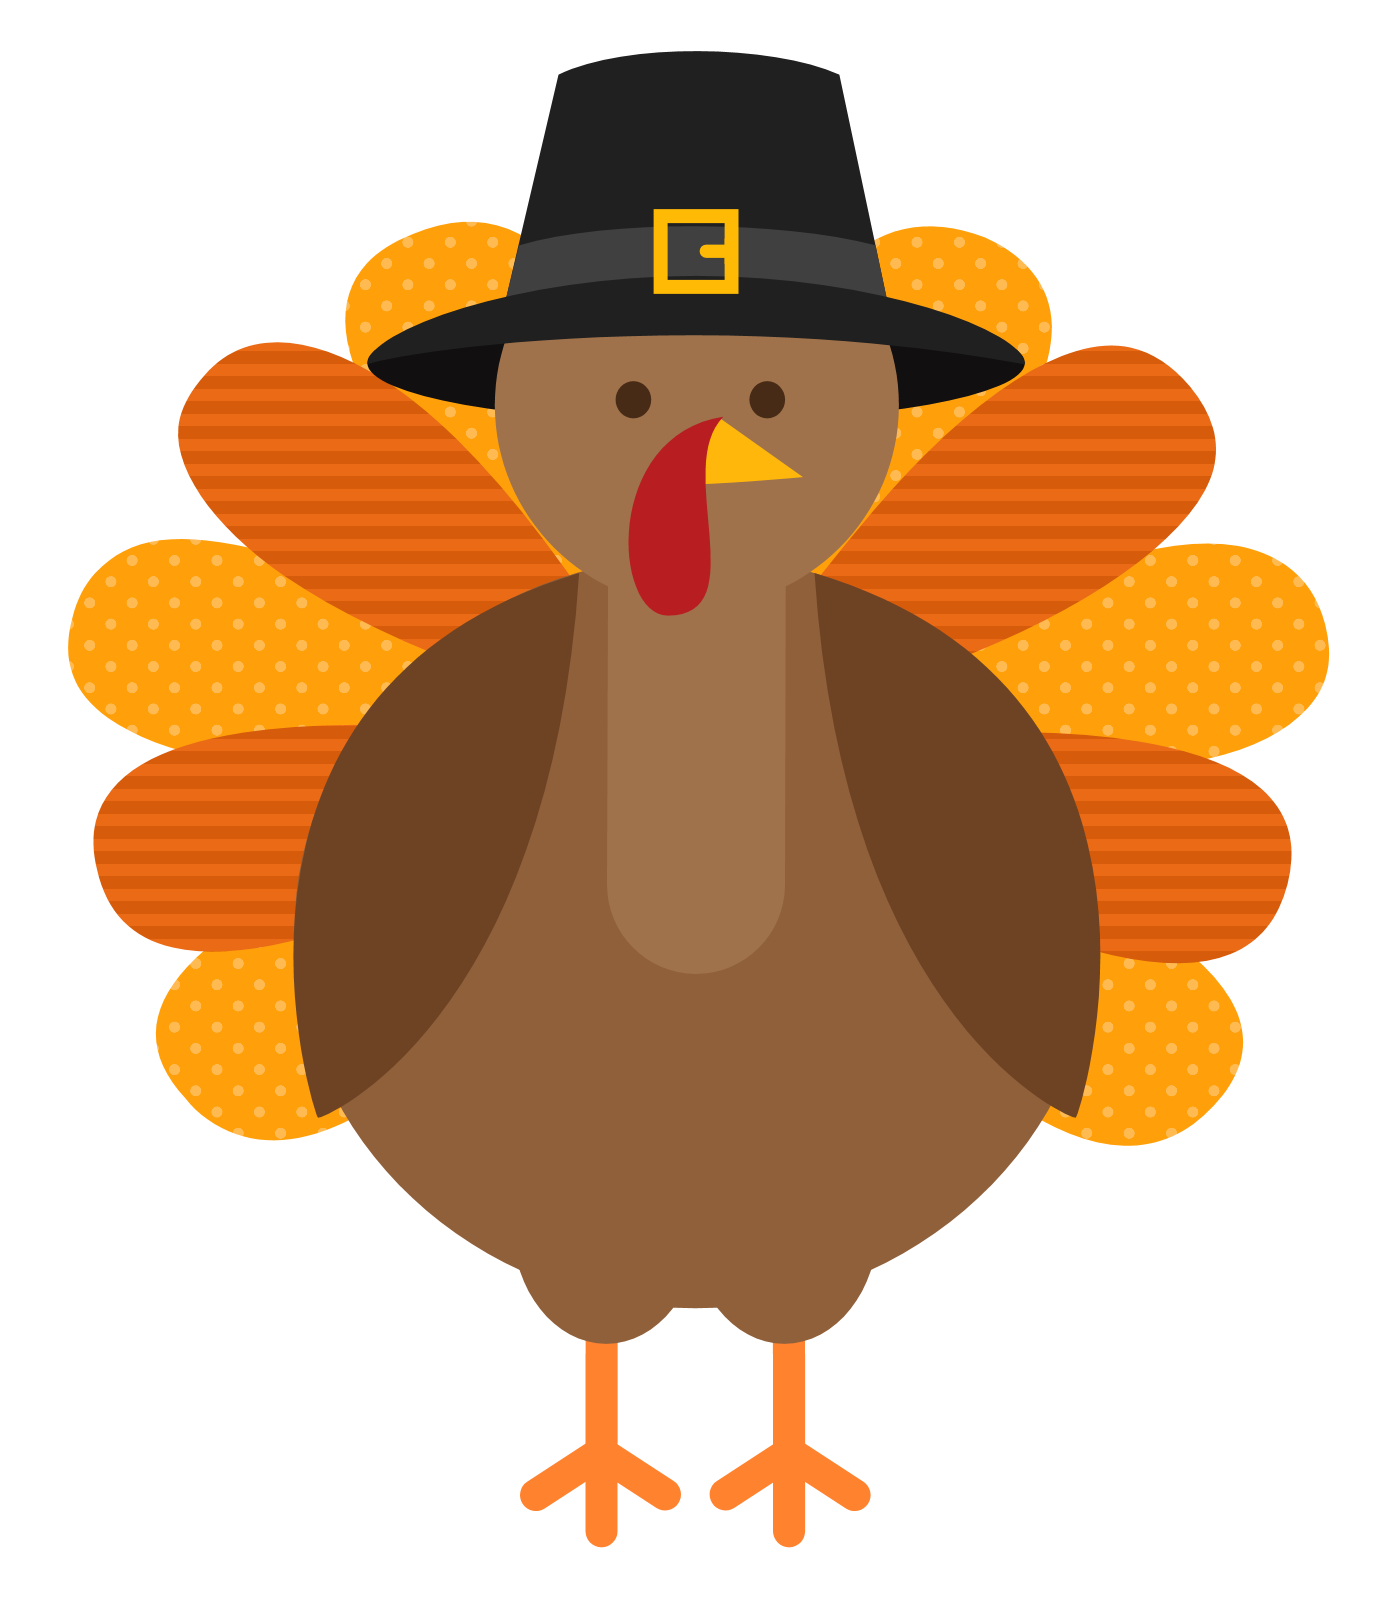 Turkey clipart pop art. Little things we